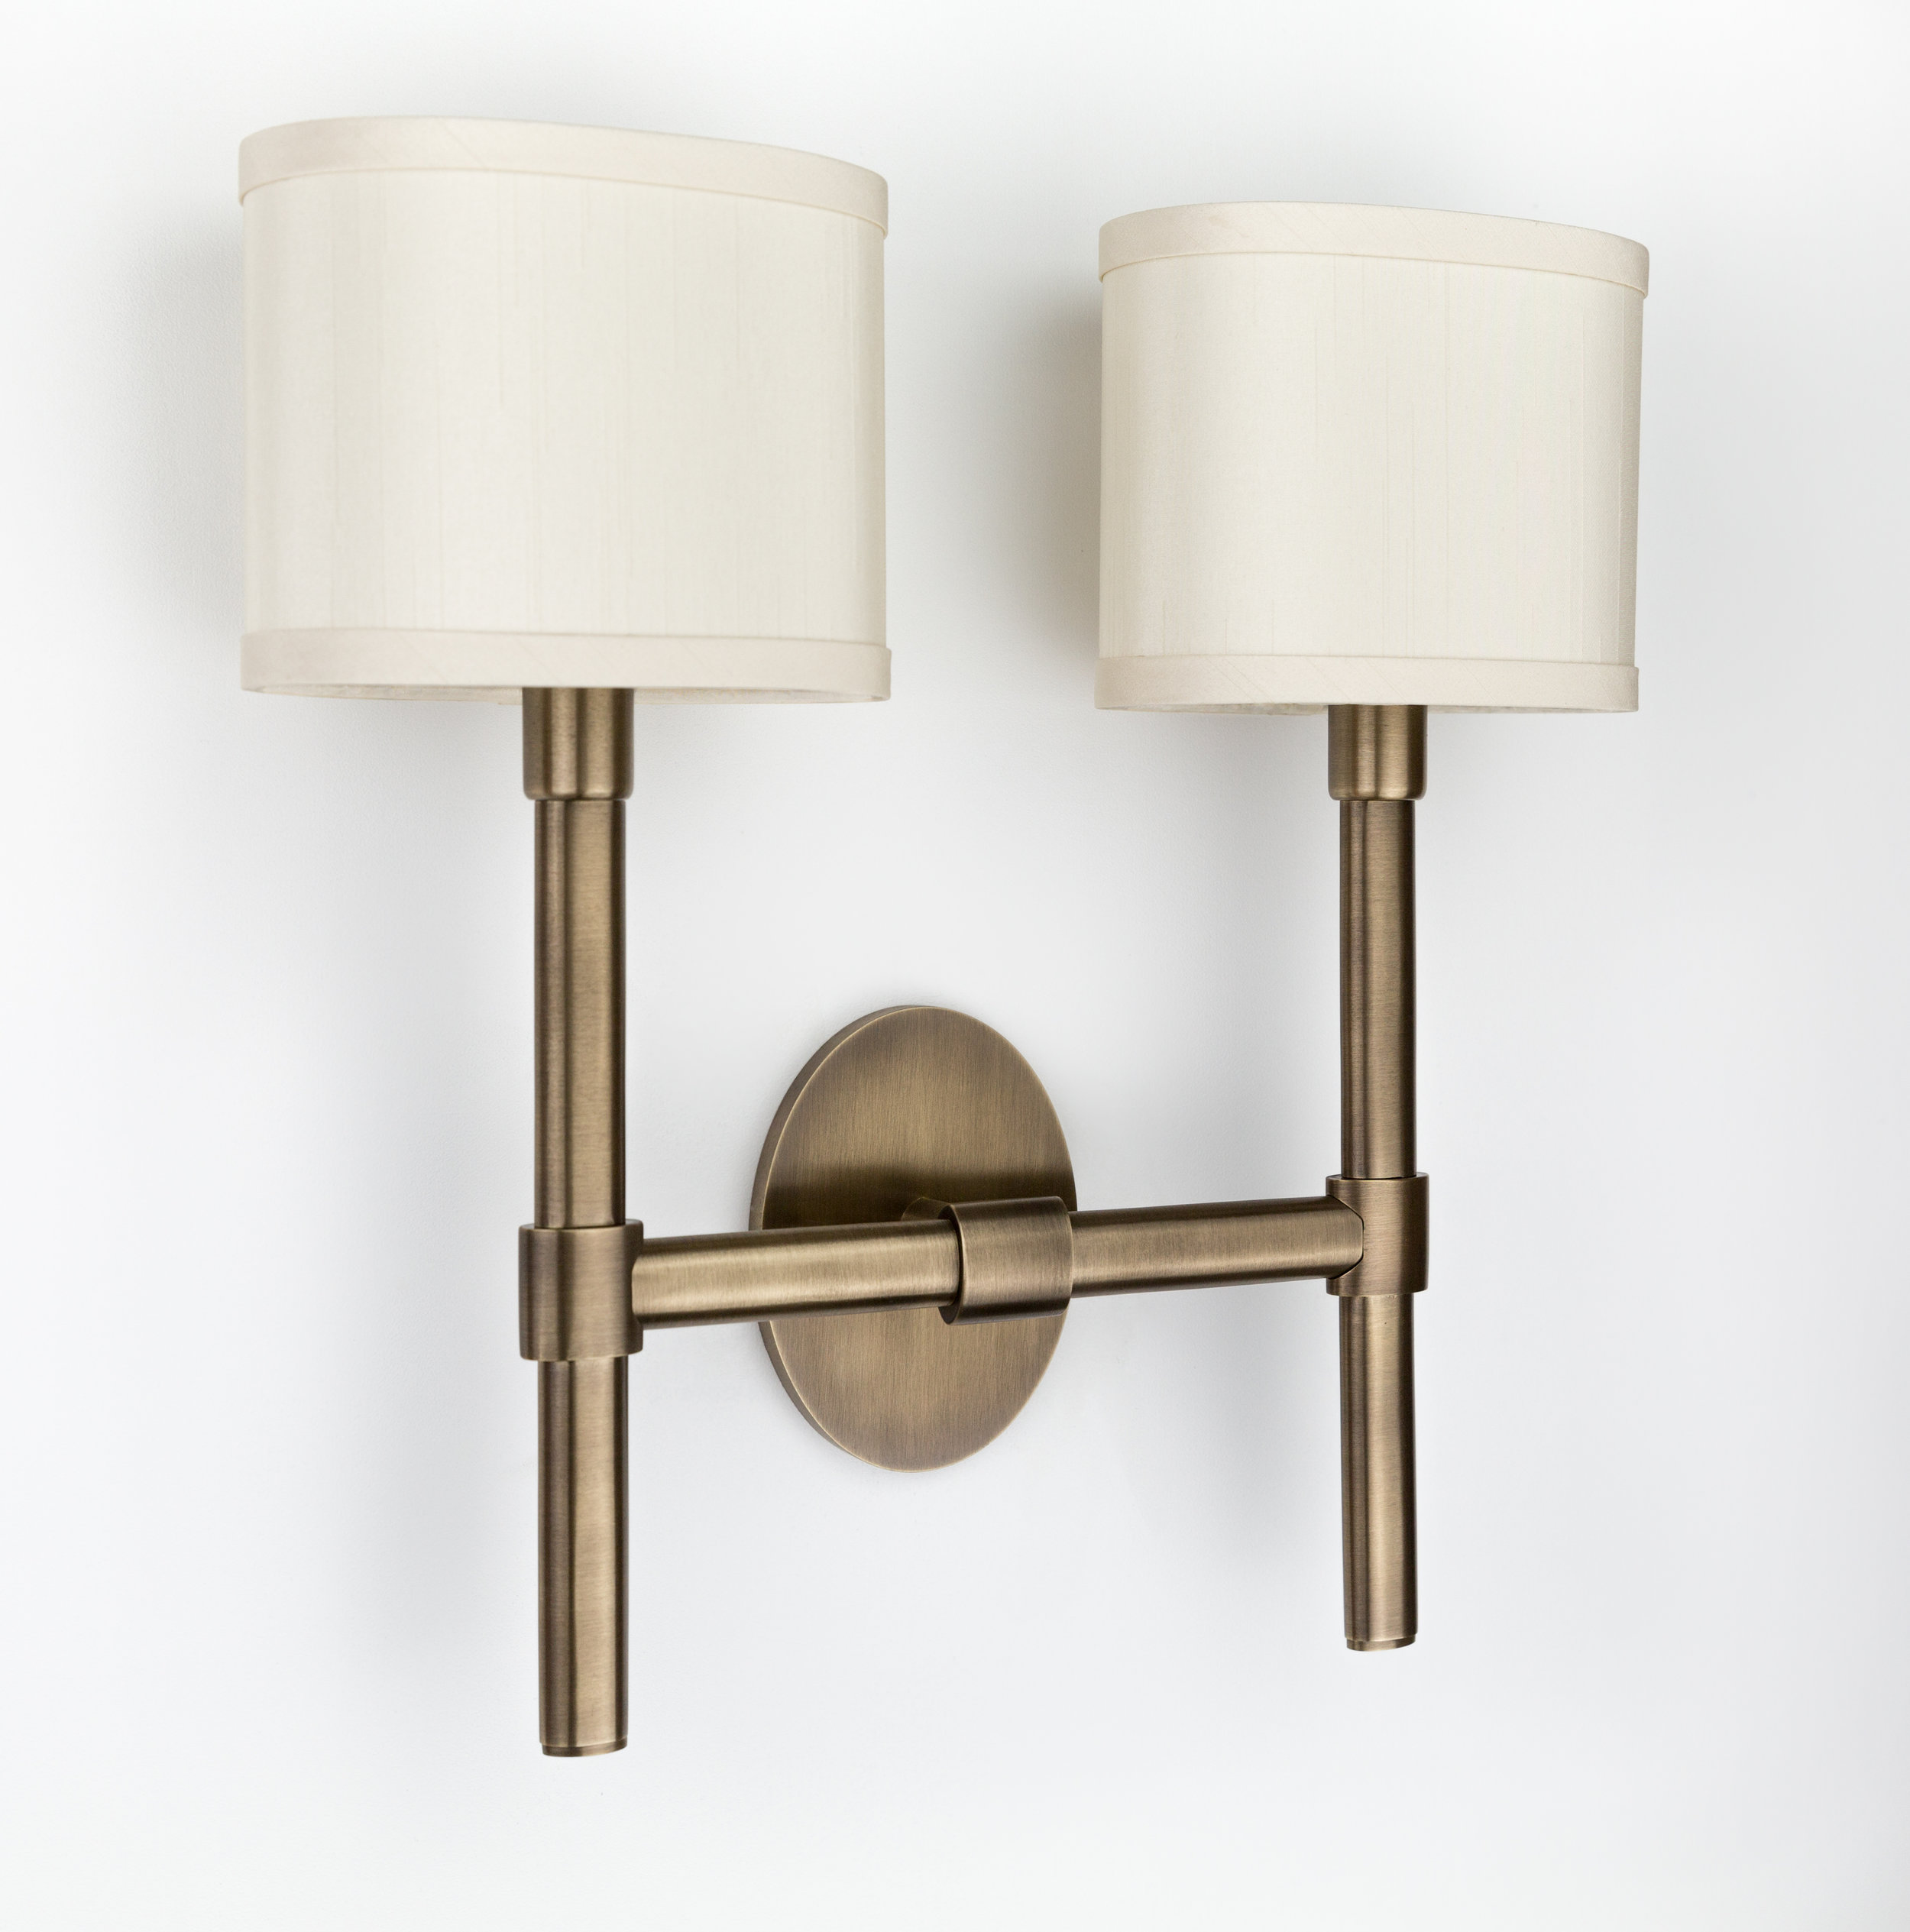 Copy of OVAL sconce - double